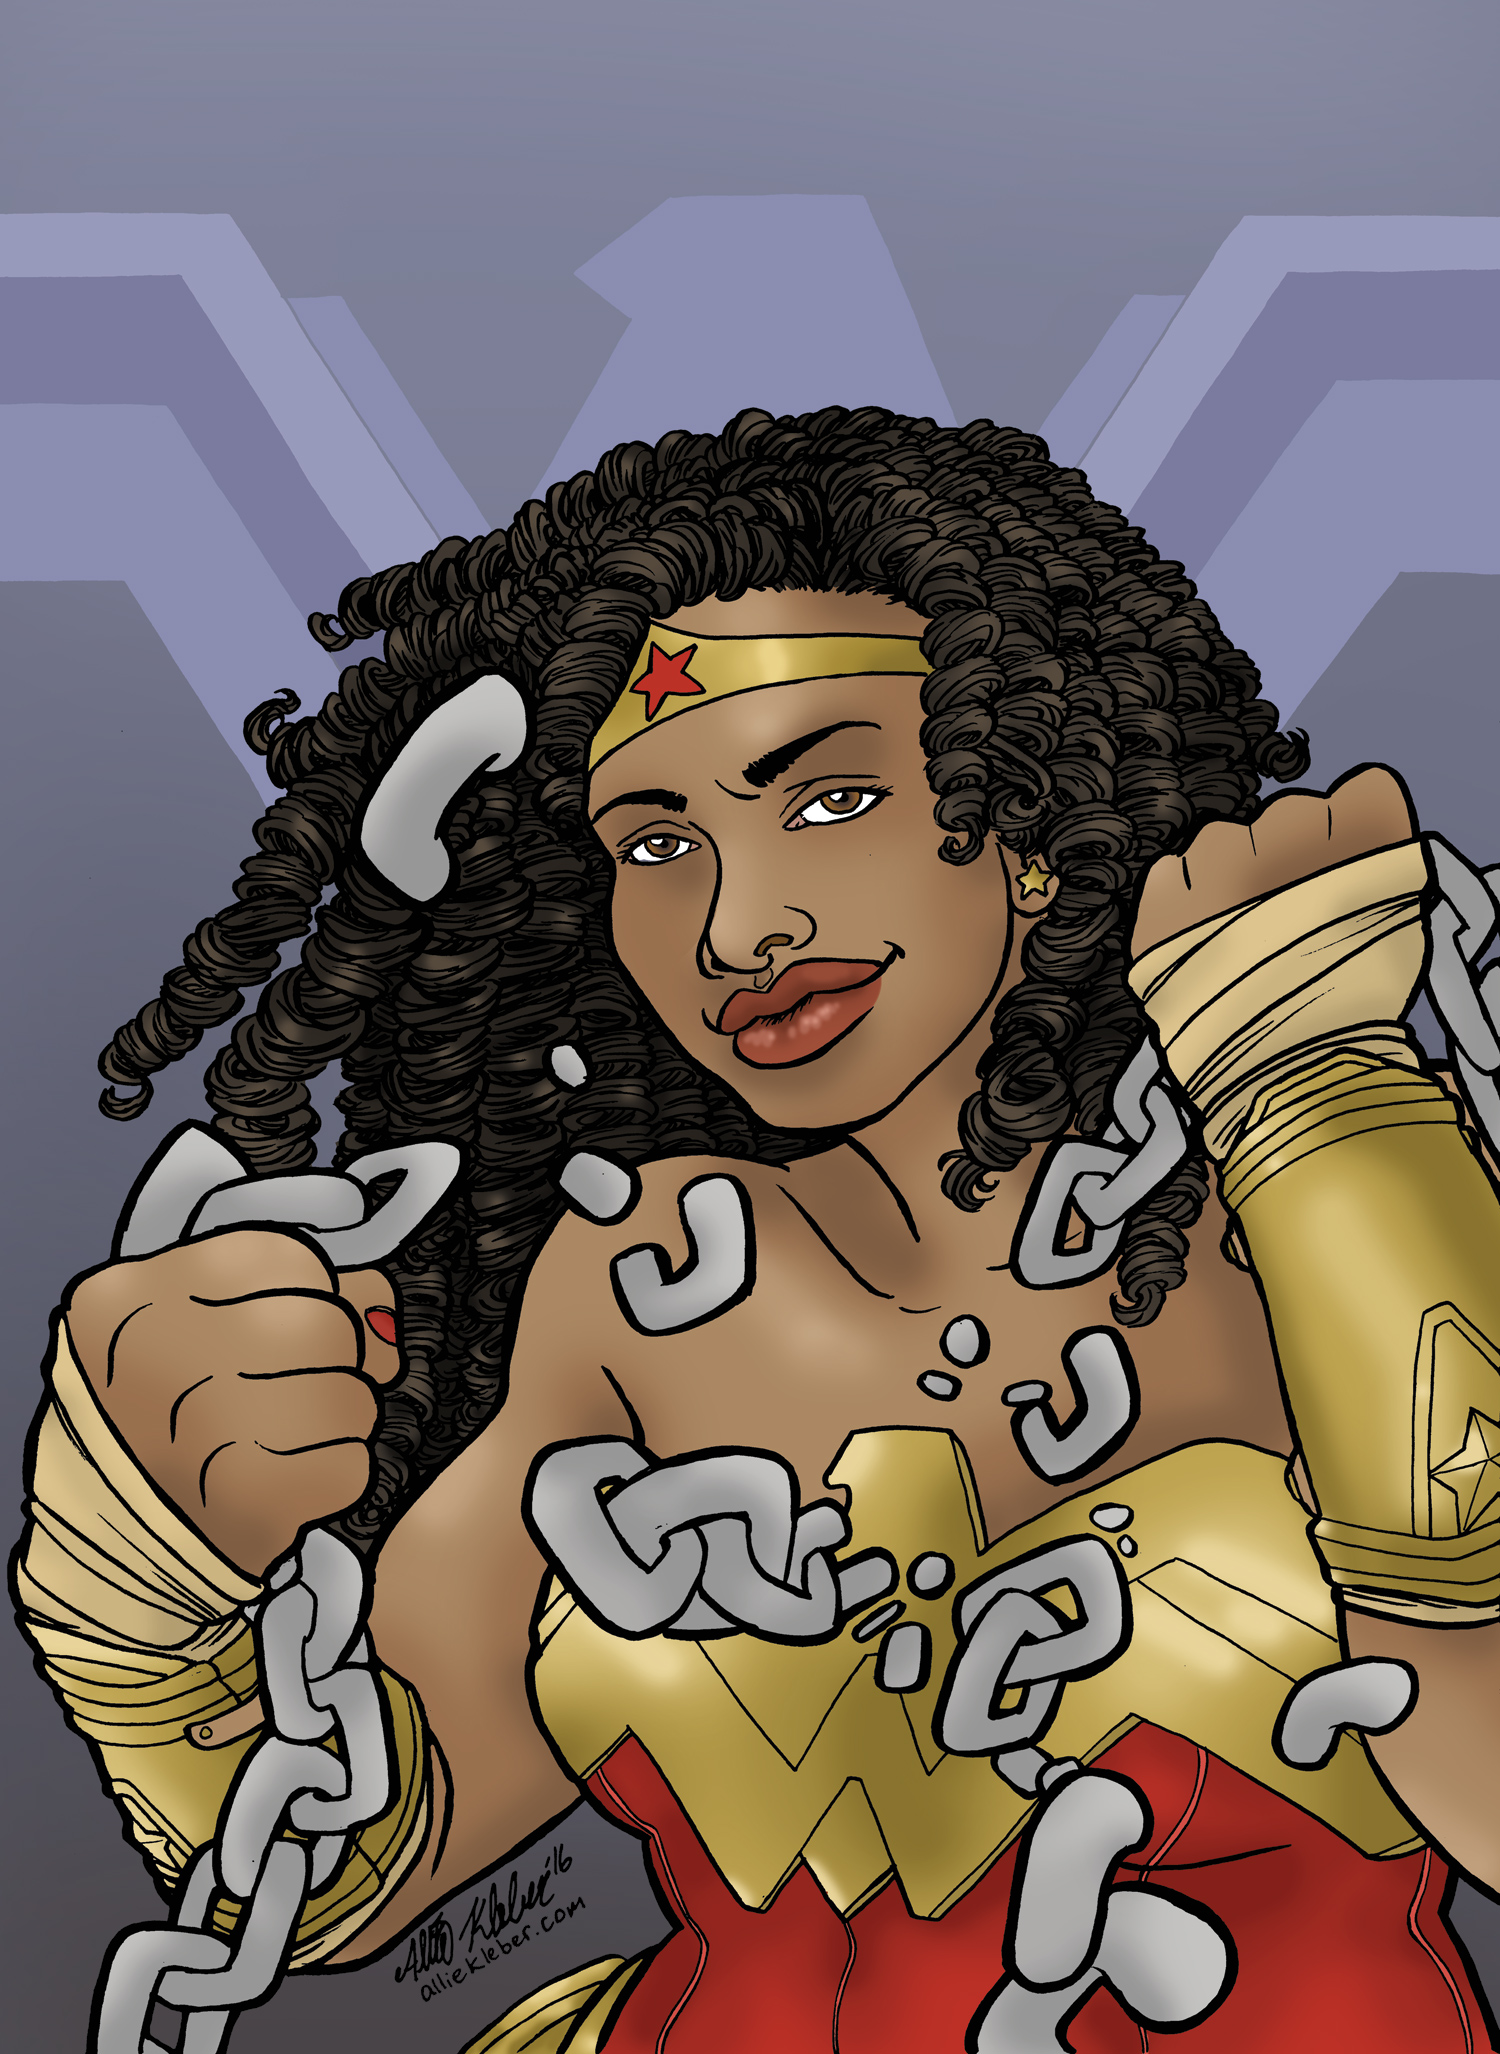 Wonder Woman as played by Gina Torres, in some better universe. Drawn for a themed art show at  Hub Comics .